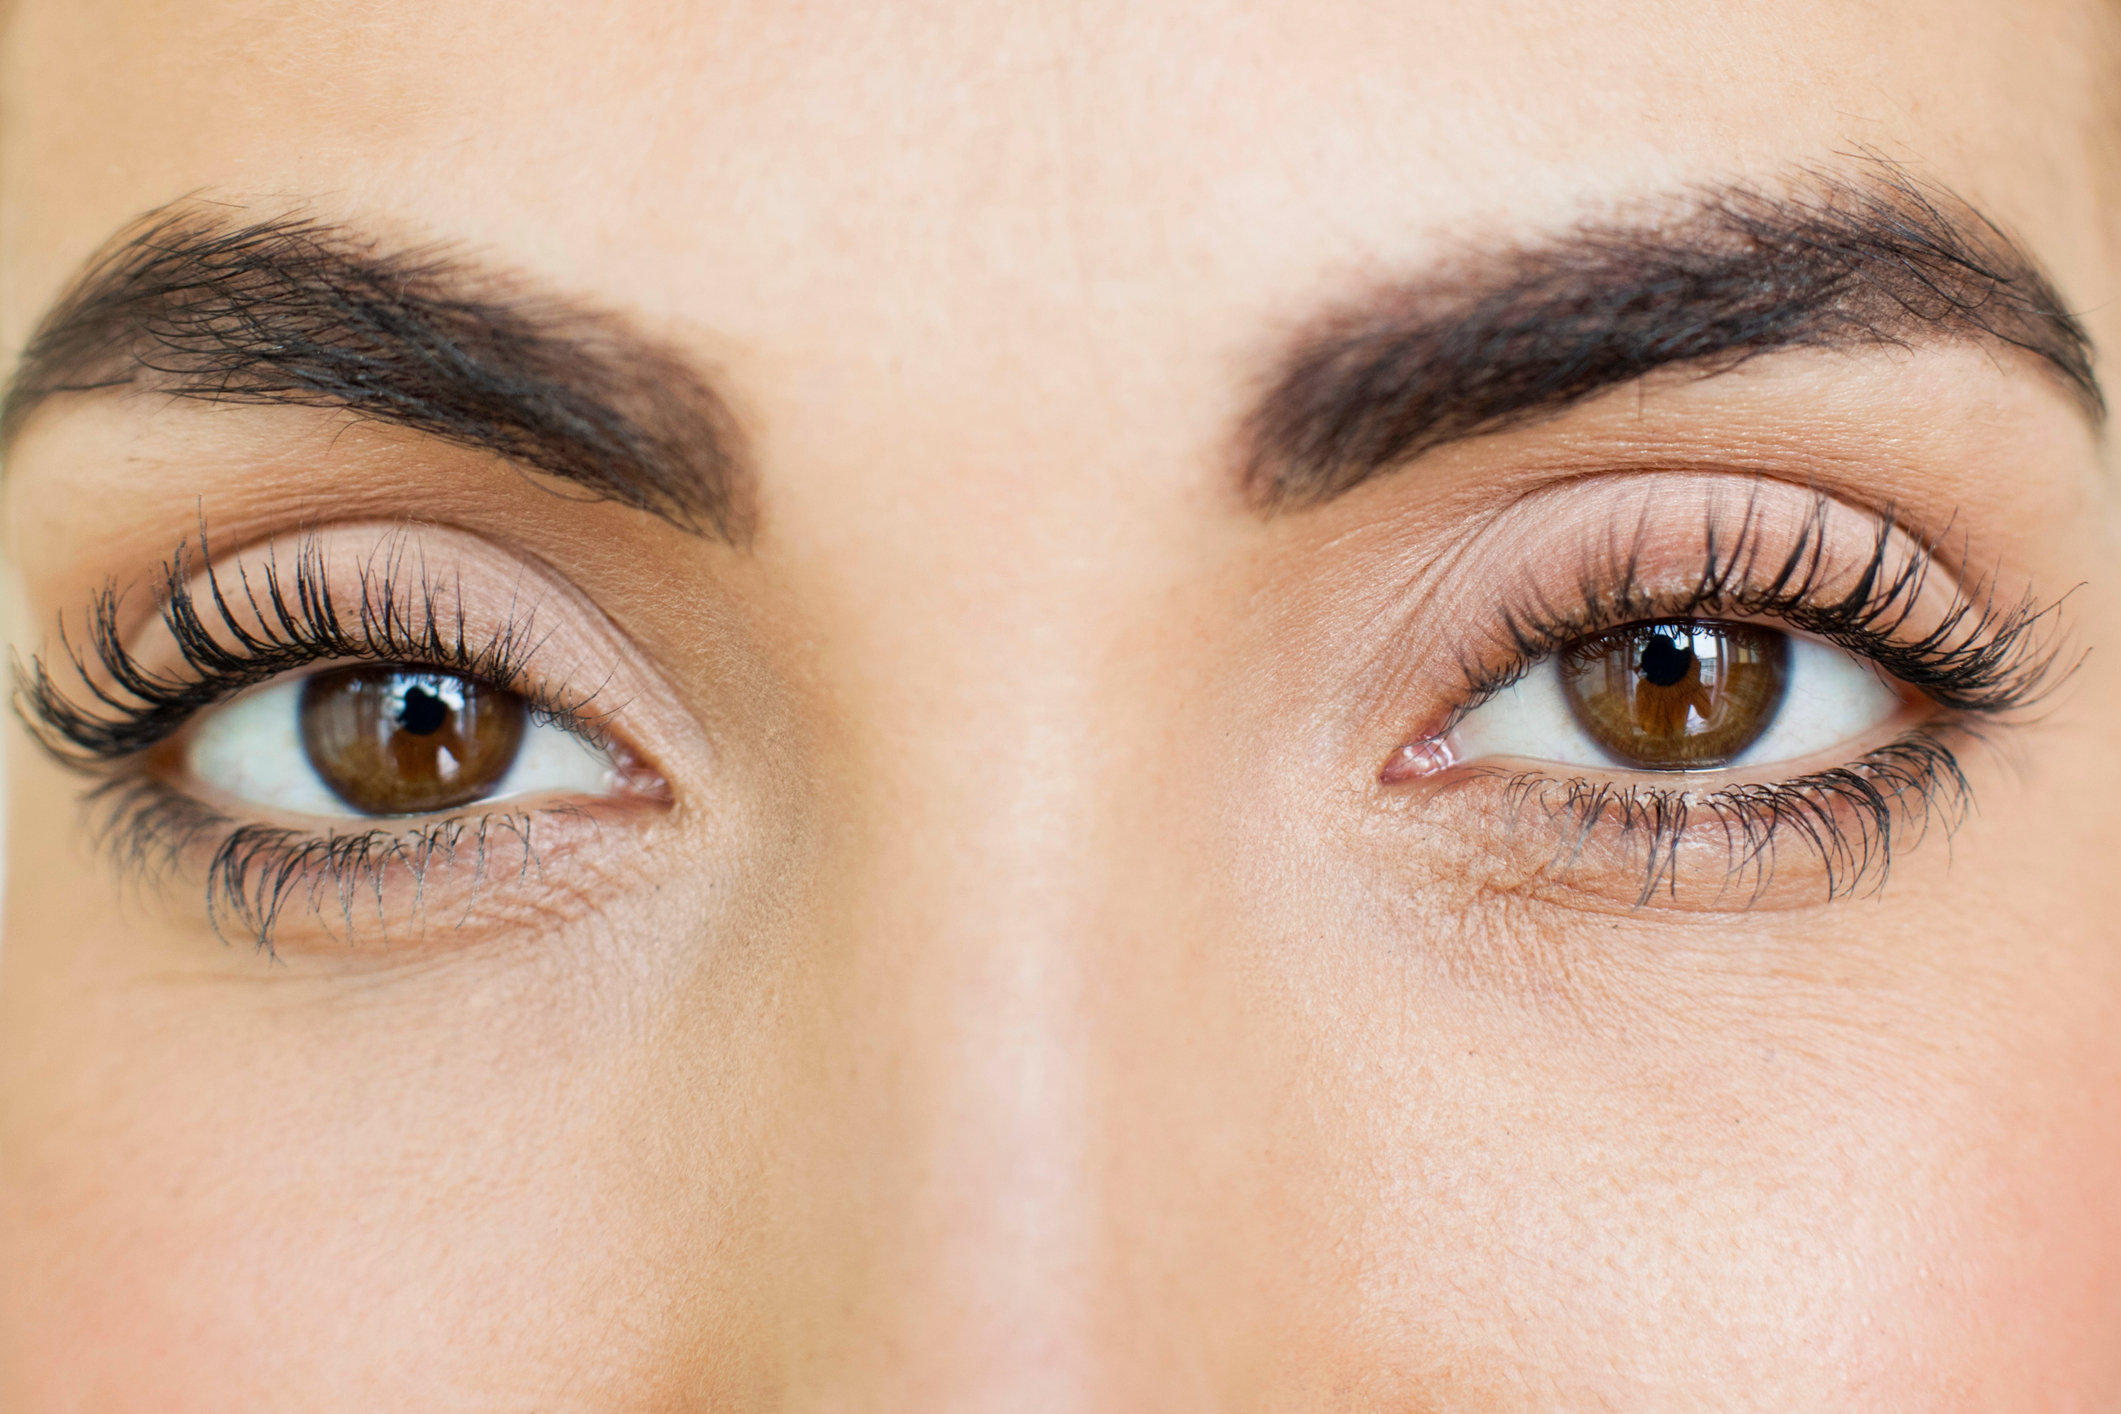 a9c80a88563 9 Best Eyelash Serums for Longer, Thicker Lashes, According to  Dermatologists